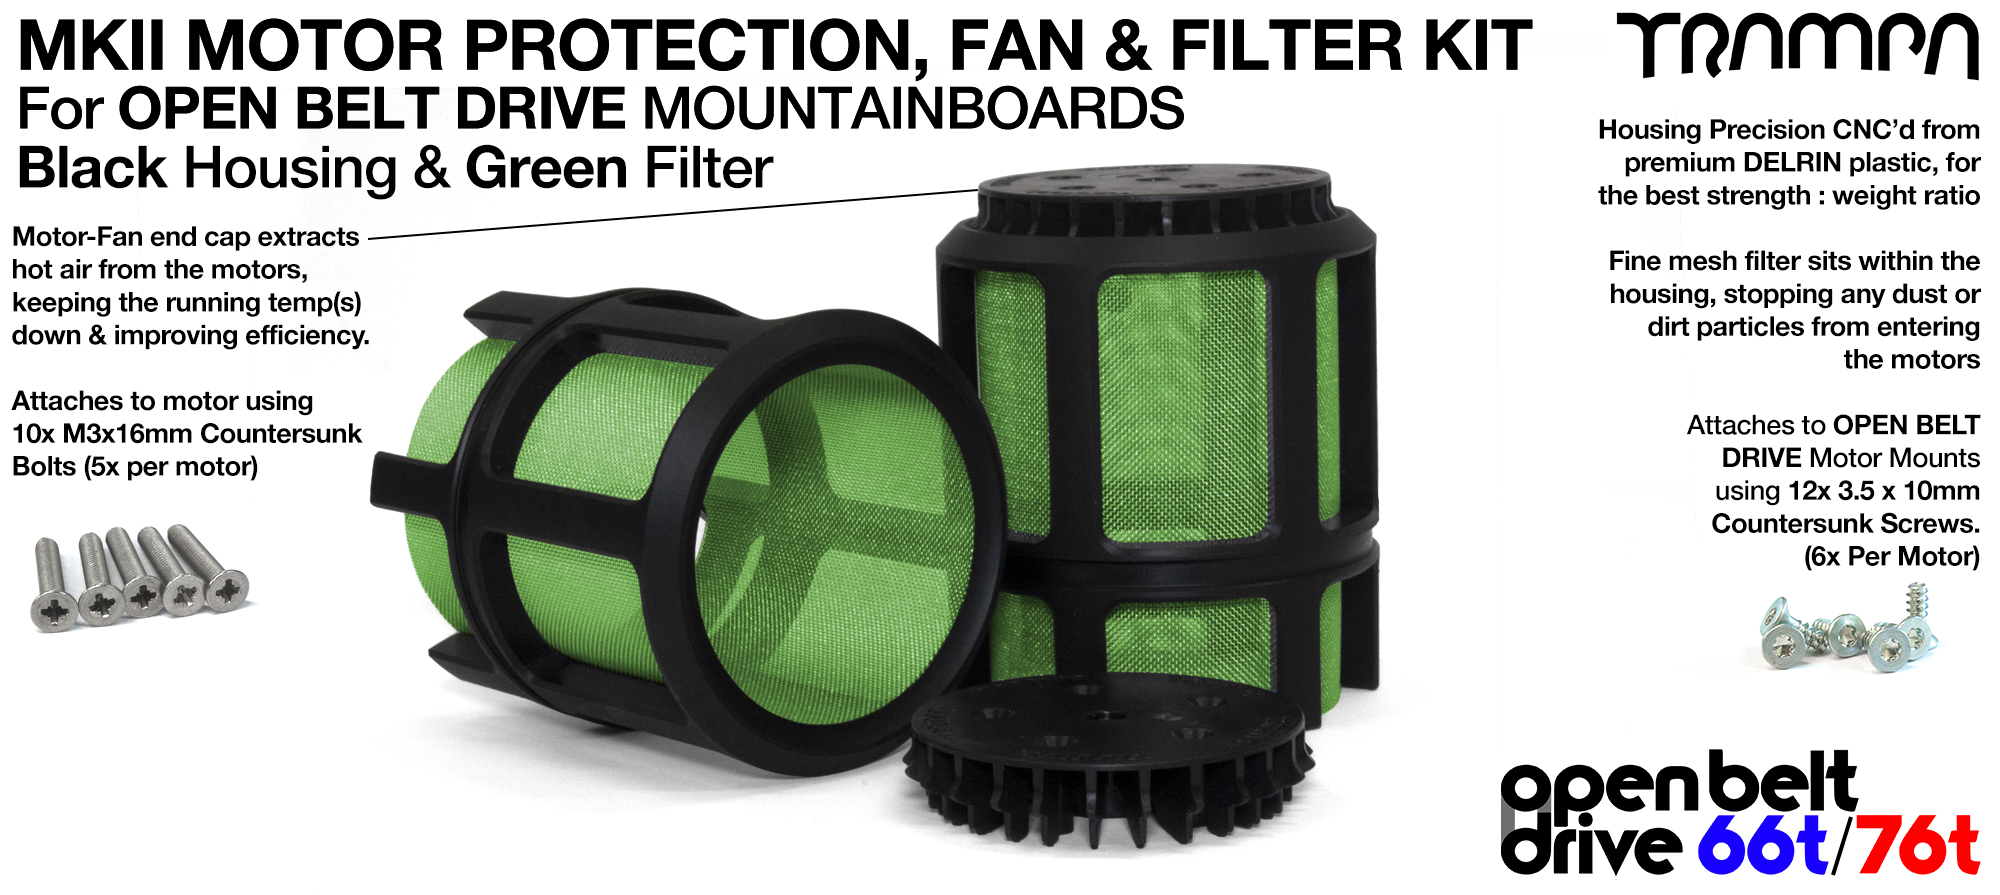 Motor Protection Cage with Fan - GREEN filter